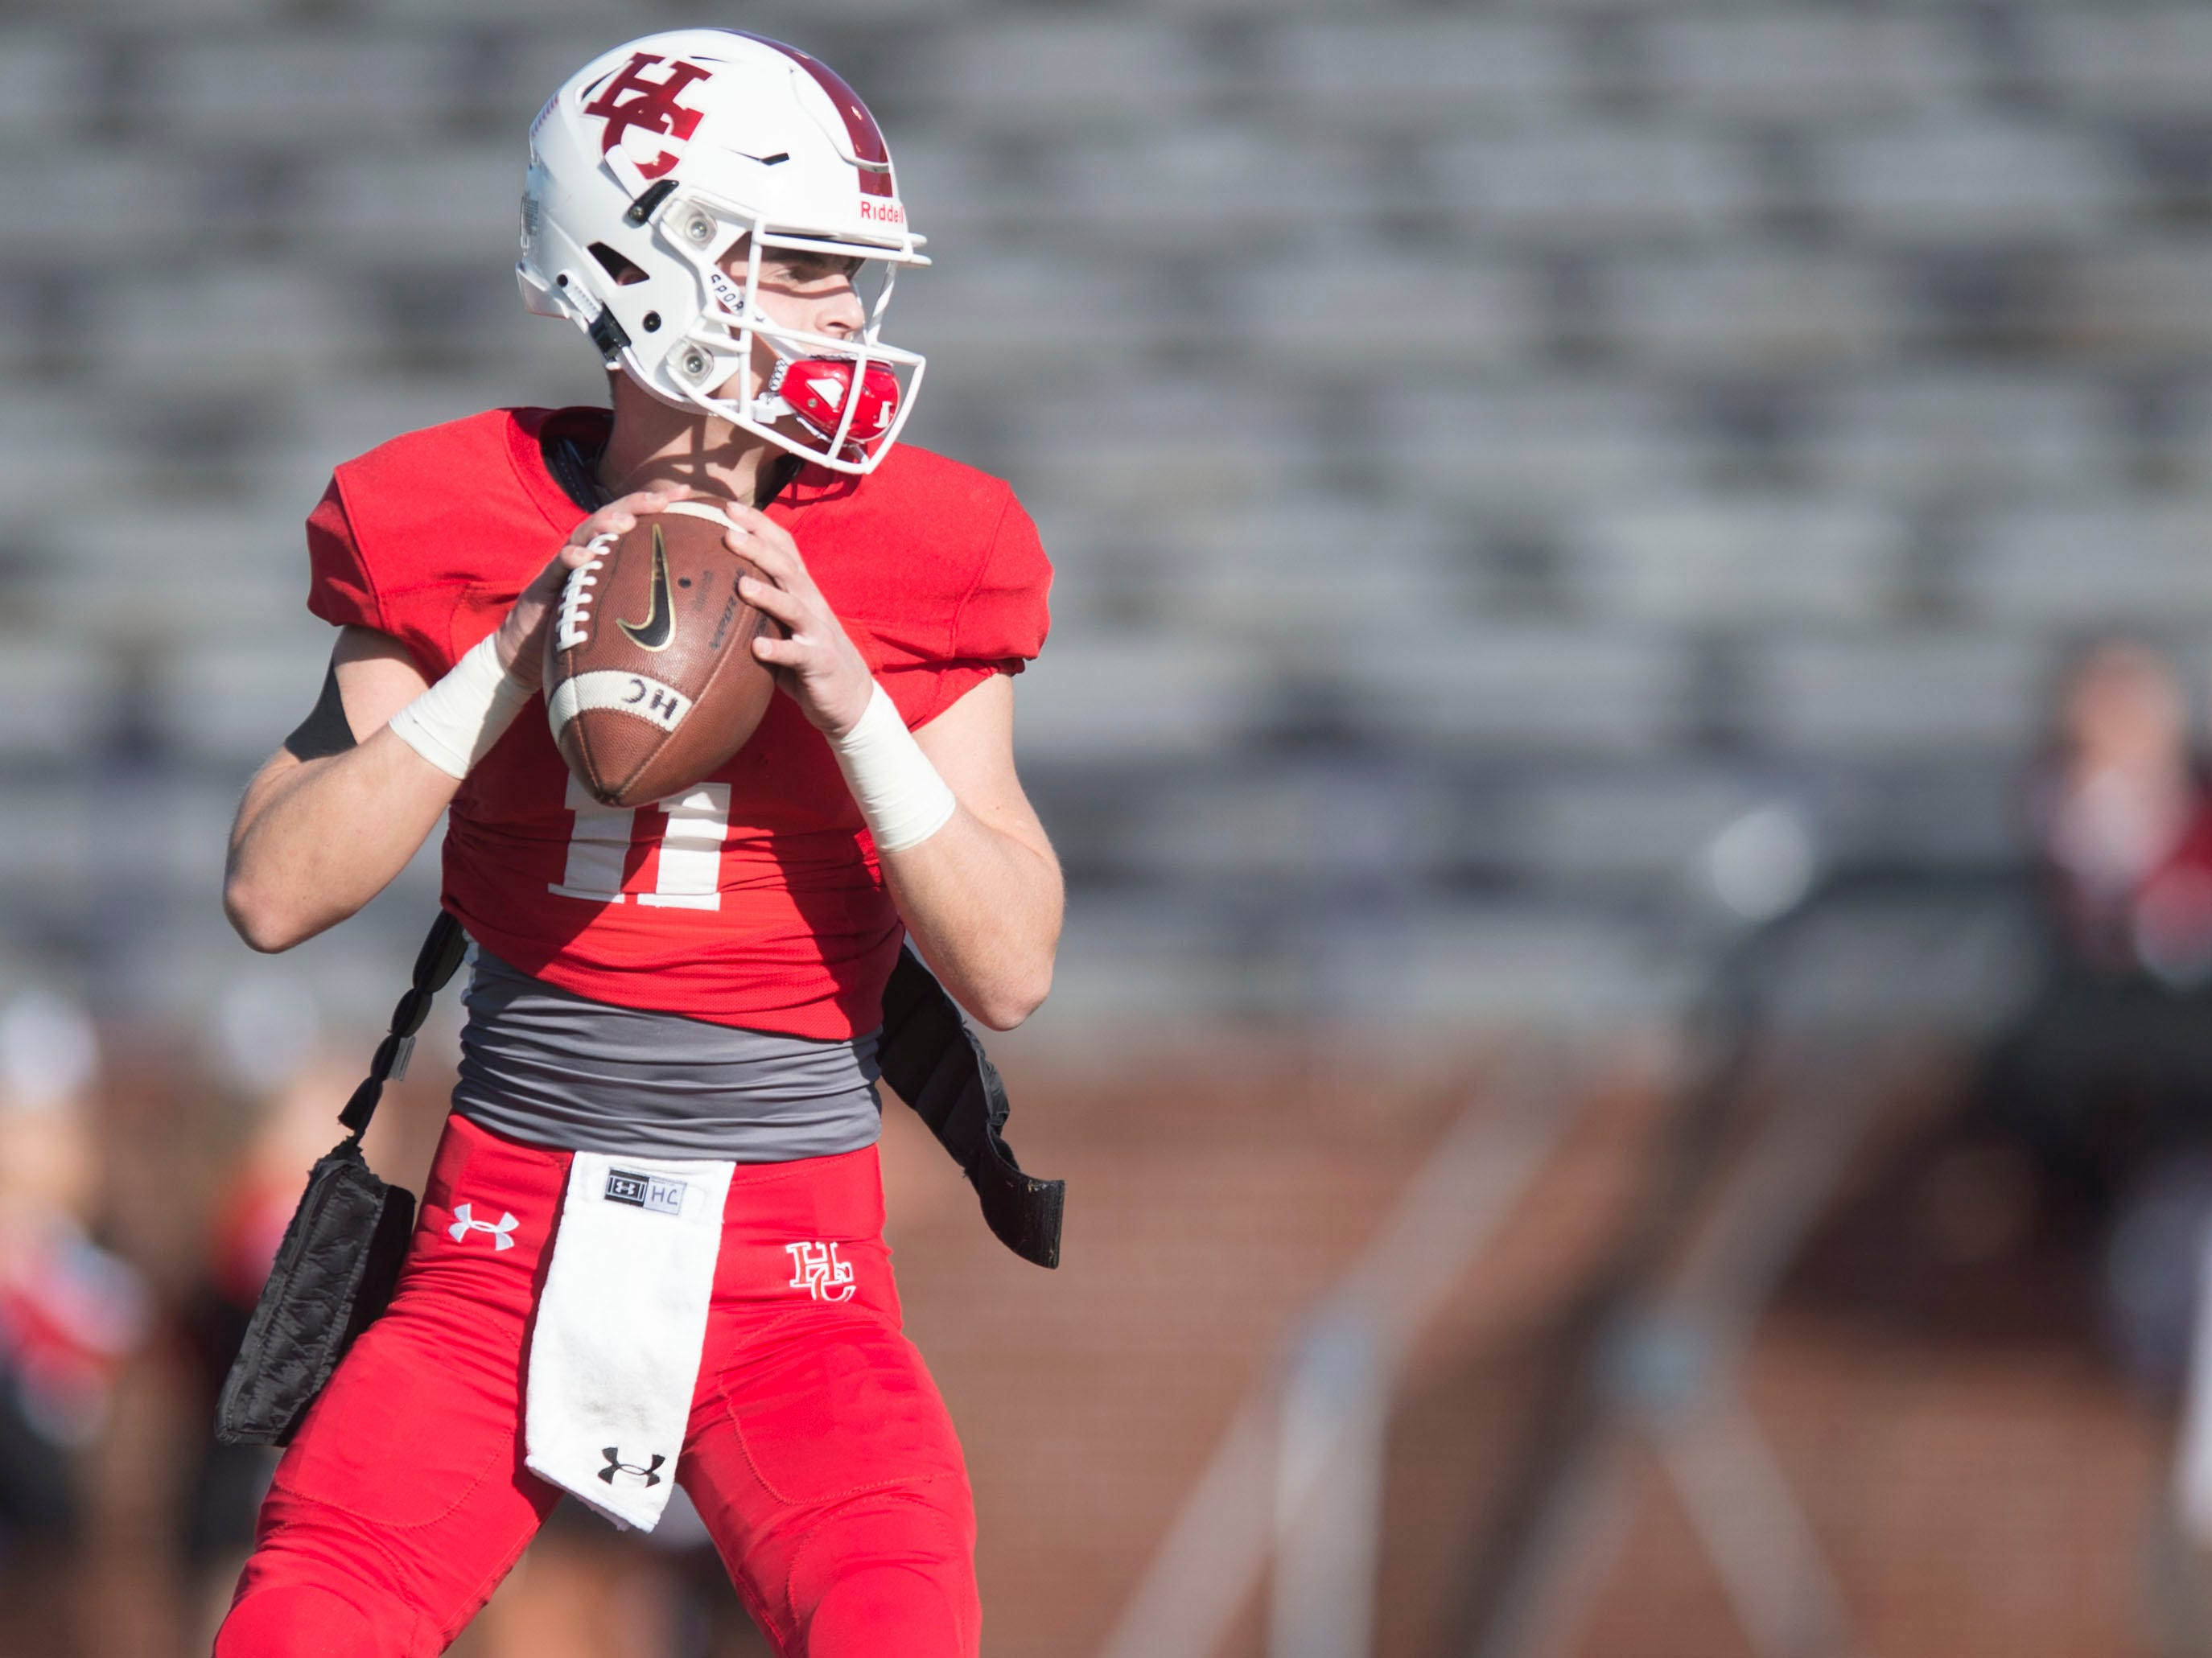 Henry County's  Will Parrish (11) warming up for the game against Knoxville Central in the Class 5A BlueCross Bowl at Tucker Stadium on Sunday, December 2, 2018.